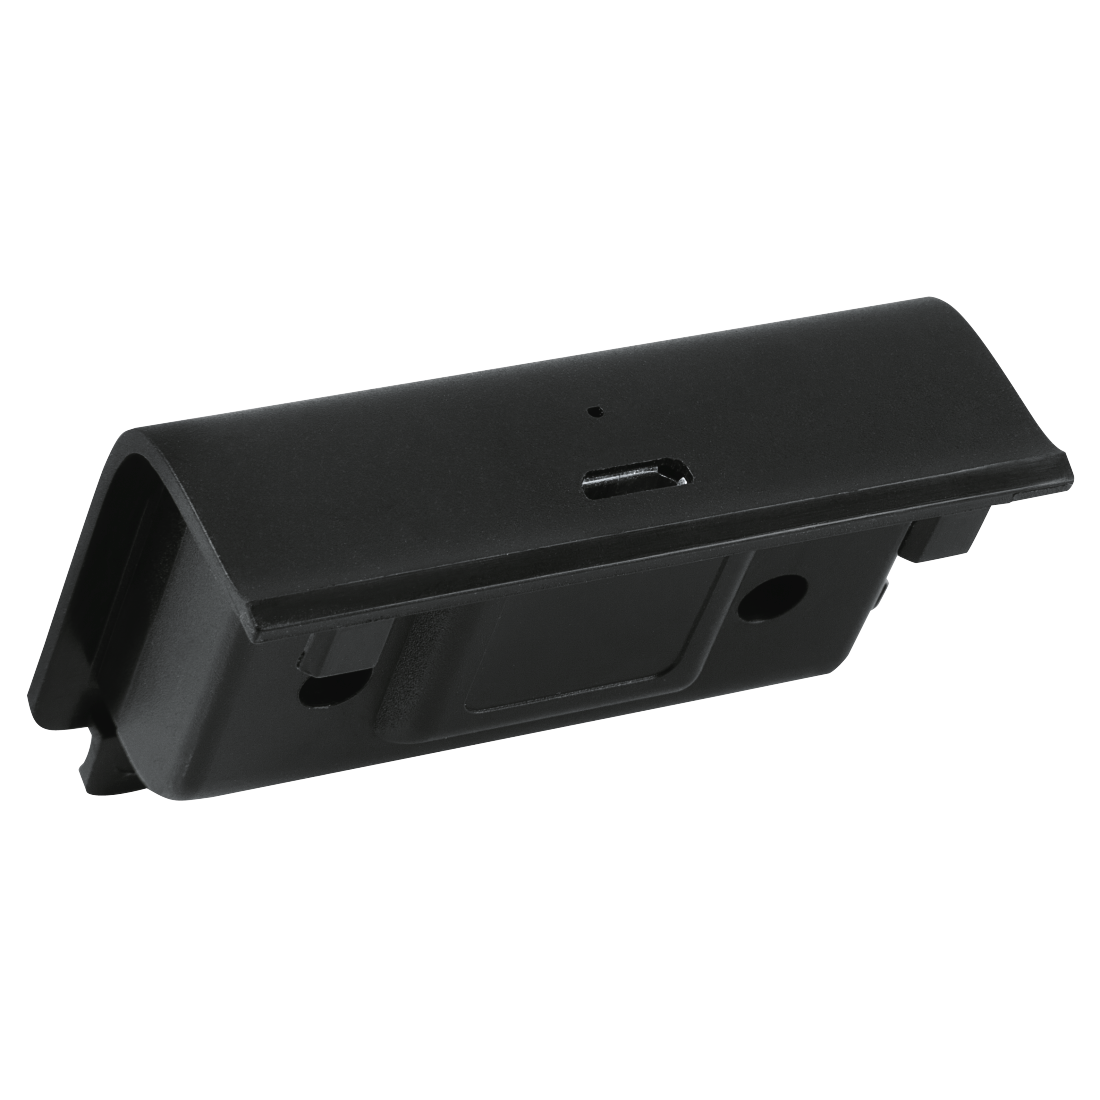 "abx4 High-Res Image4 - Hama, ""Black Thunder"" Charging Station for Xbox One/One S"